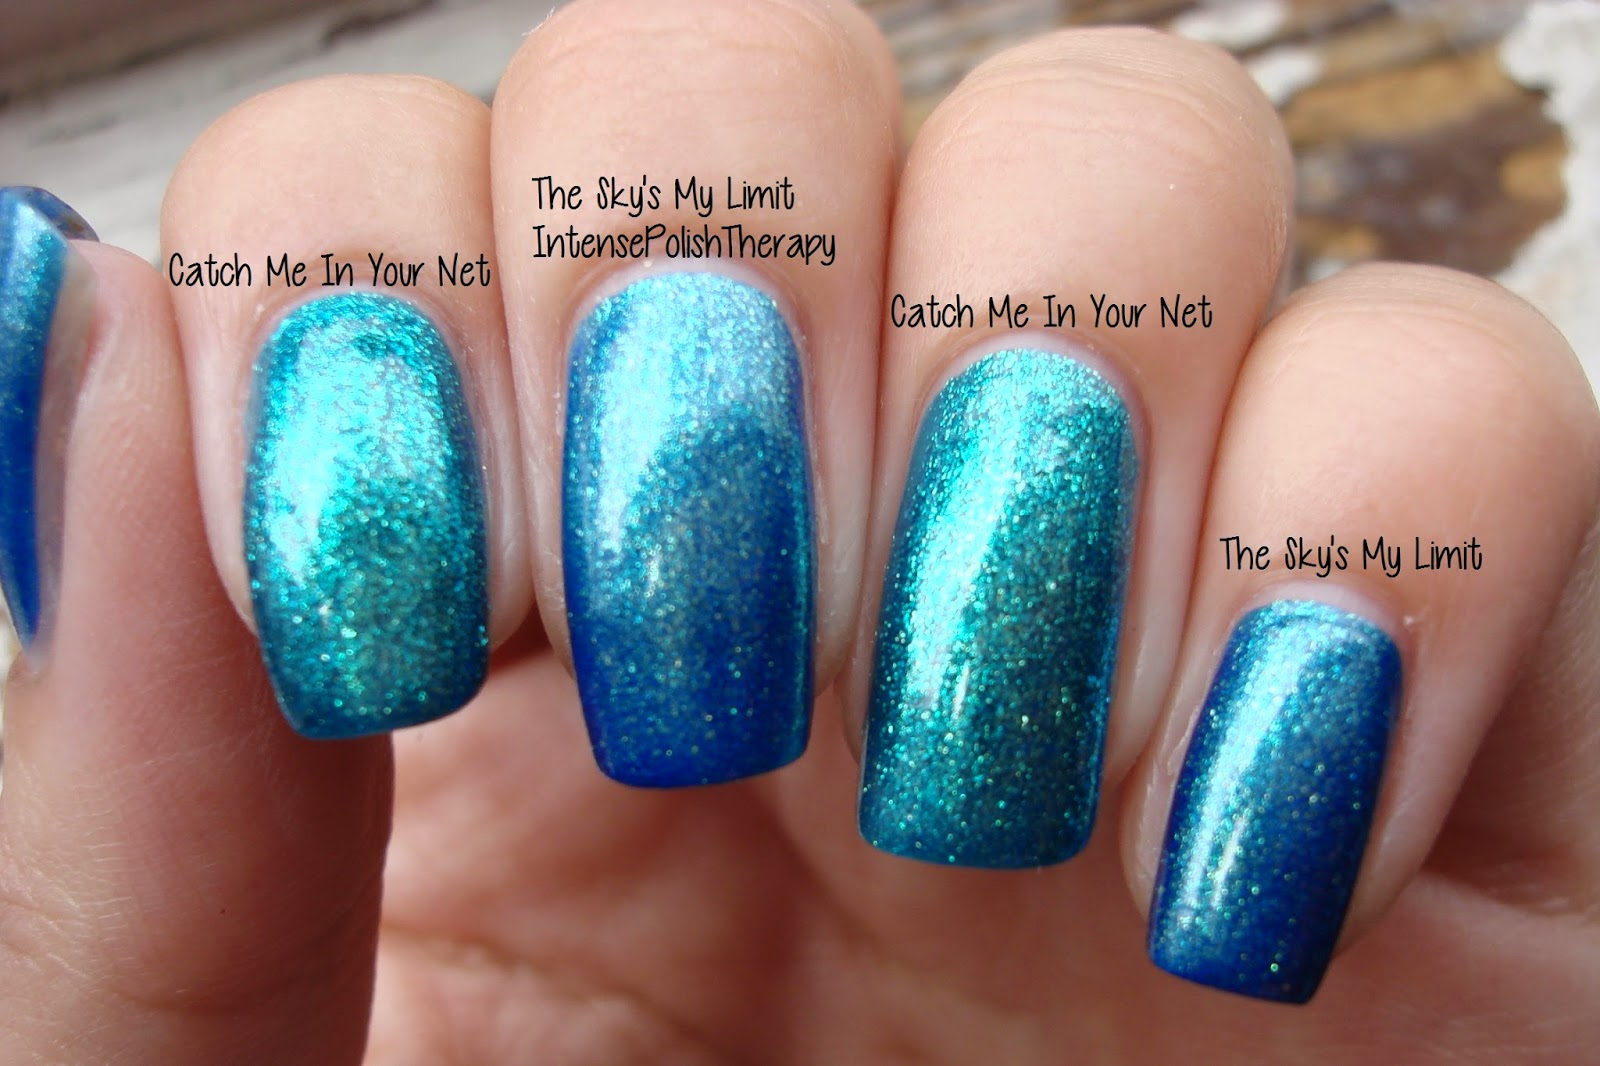 OPI - The Sky's My Limit & Catch Me In Your Net - Comparison